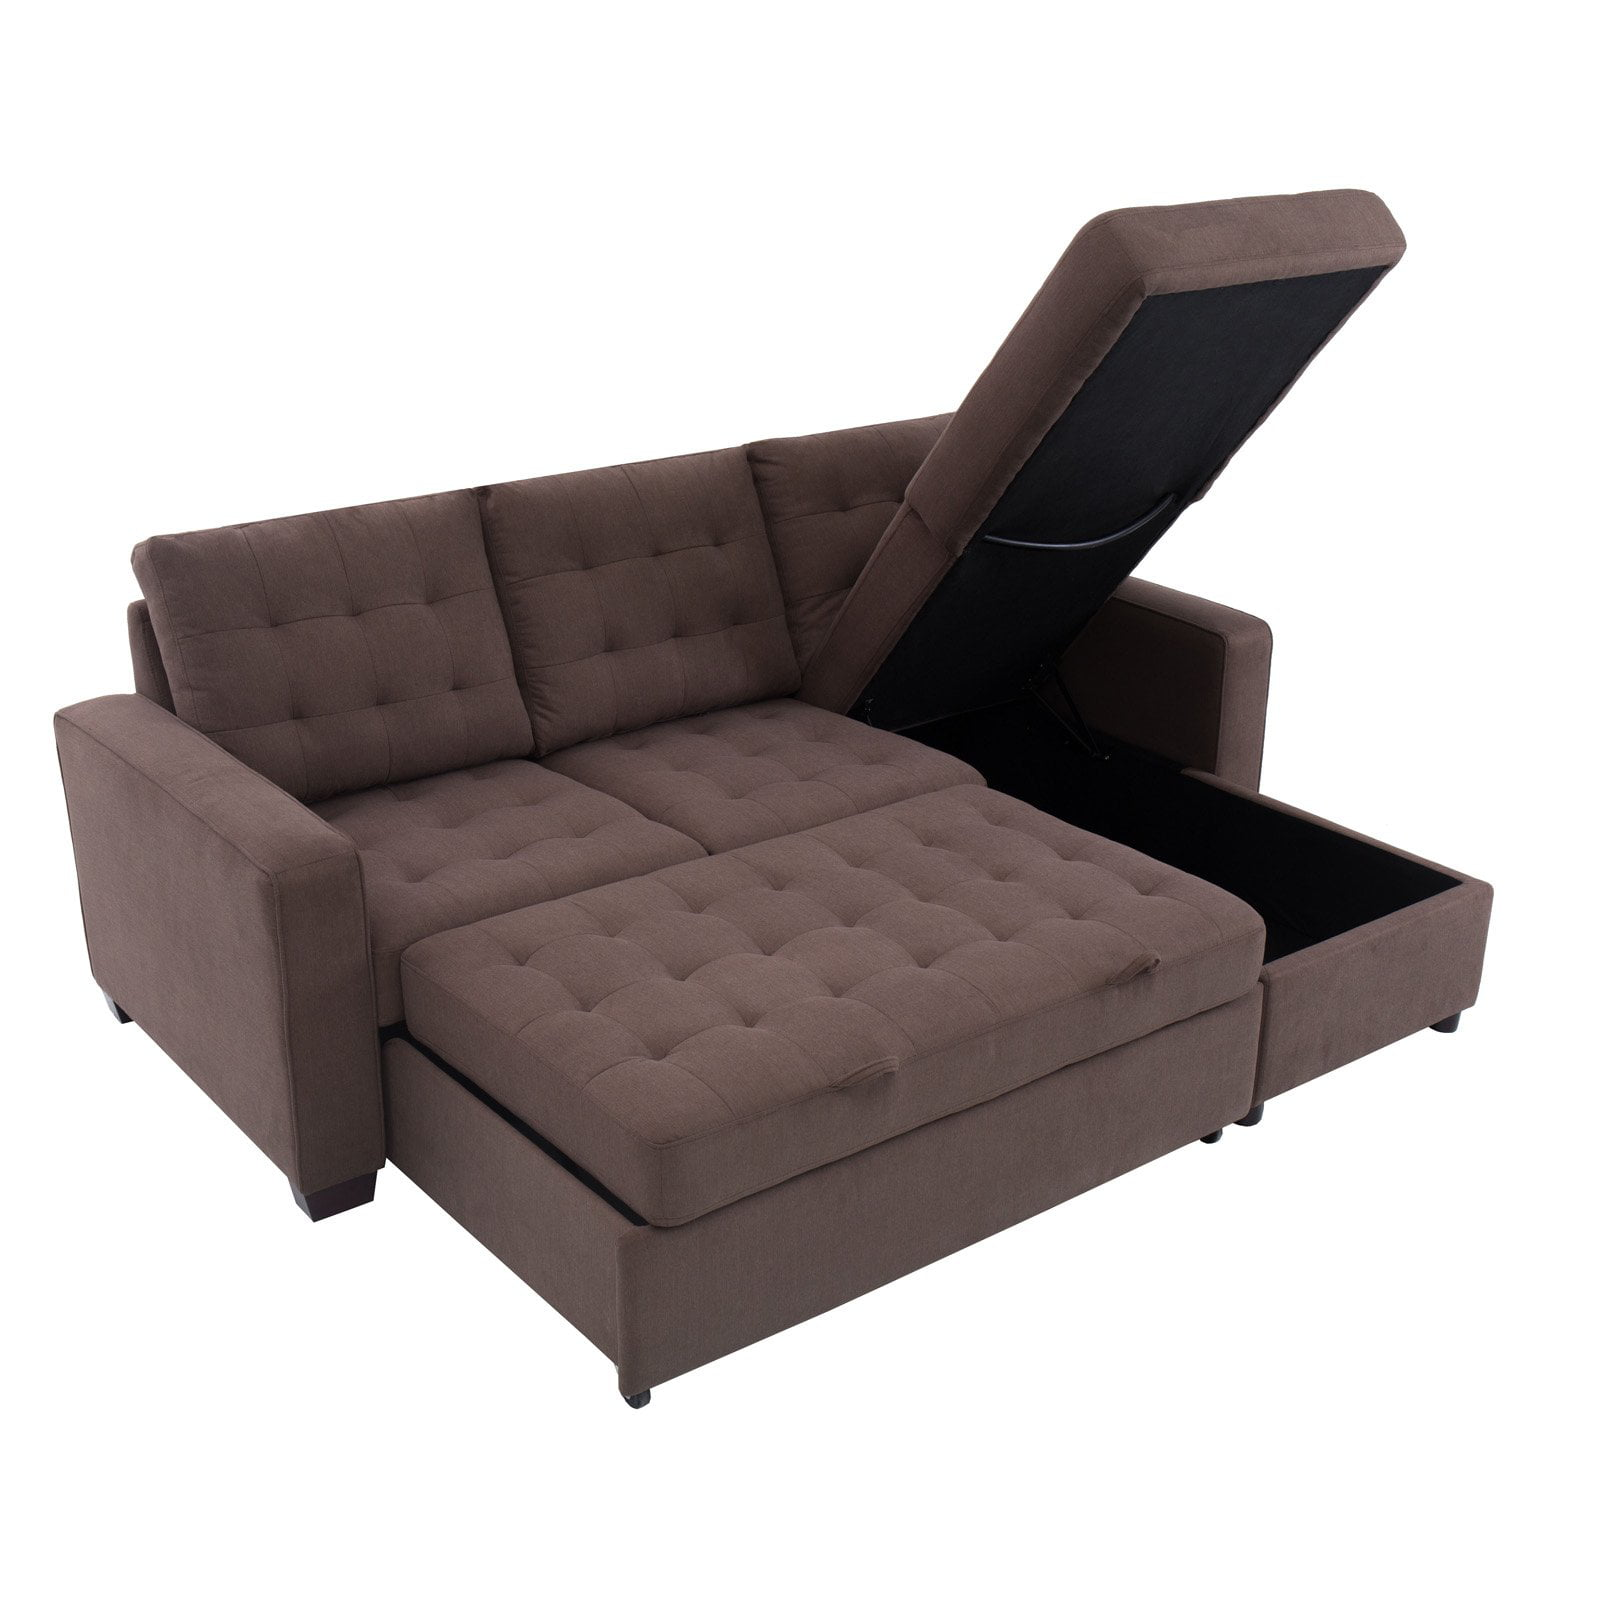 Bostal Serta Sofa Bed Convertible Converts Into A Chaise And Storage Under The